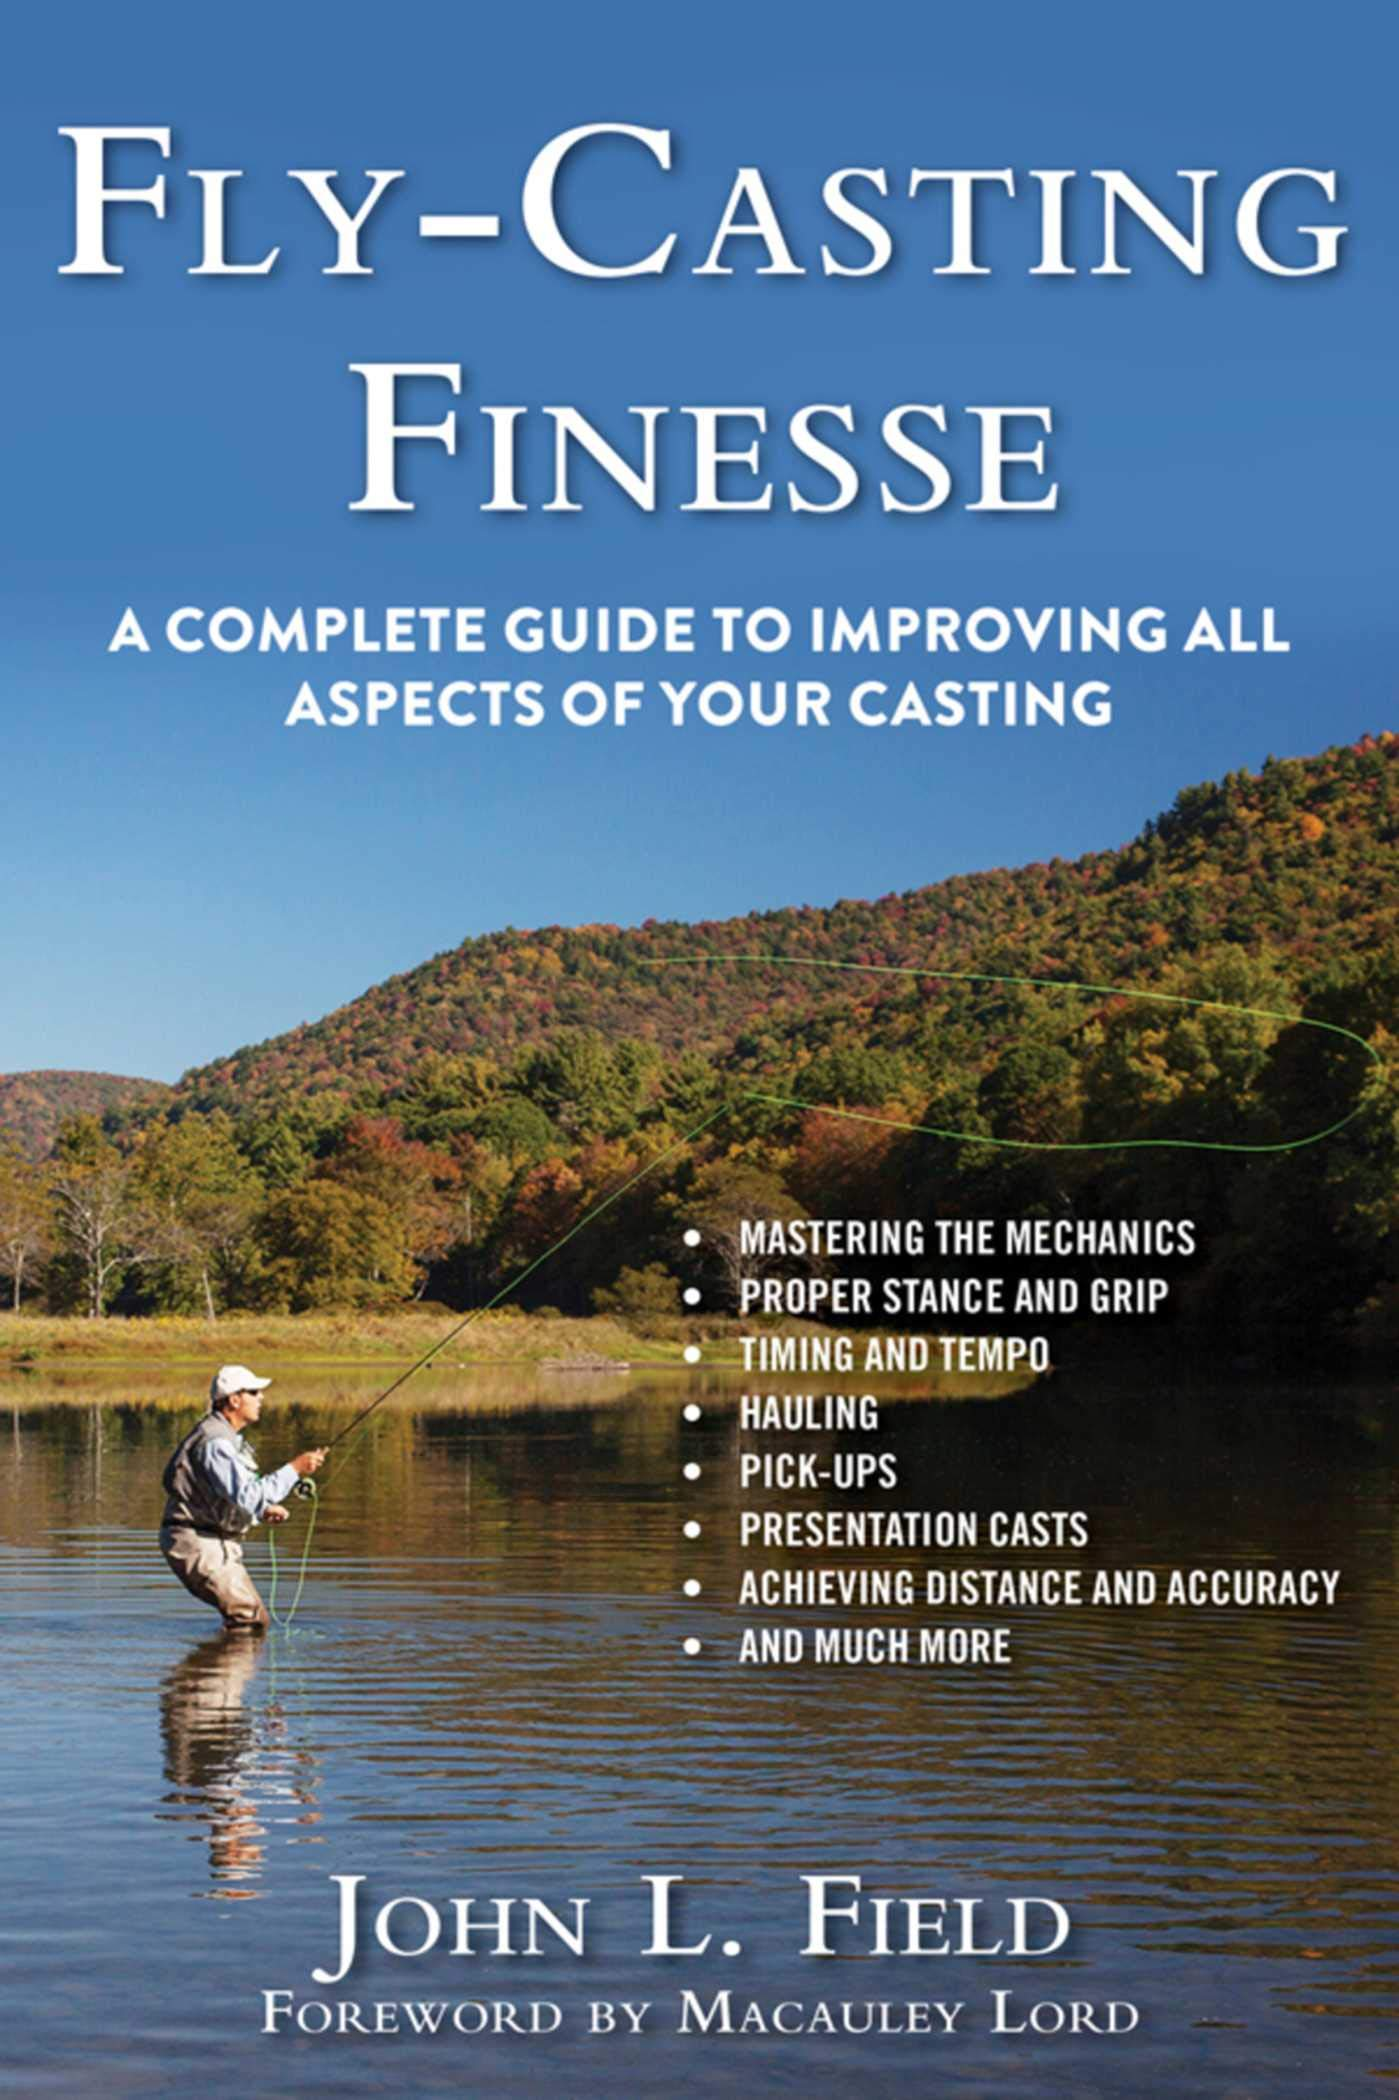 Fly-Casting Finesse A Complete Guide to Improving All Aspects of Your Casting